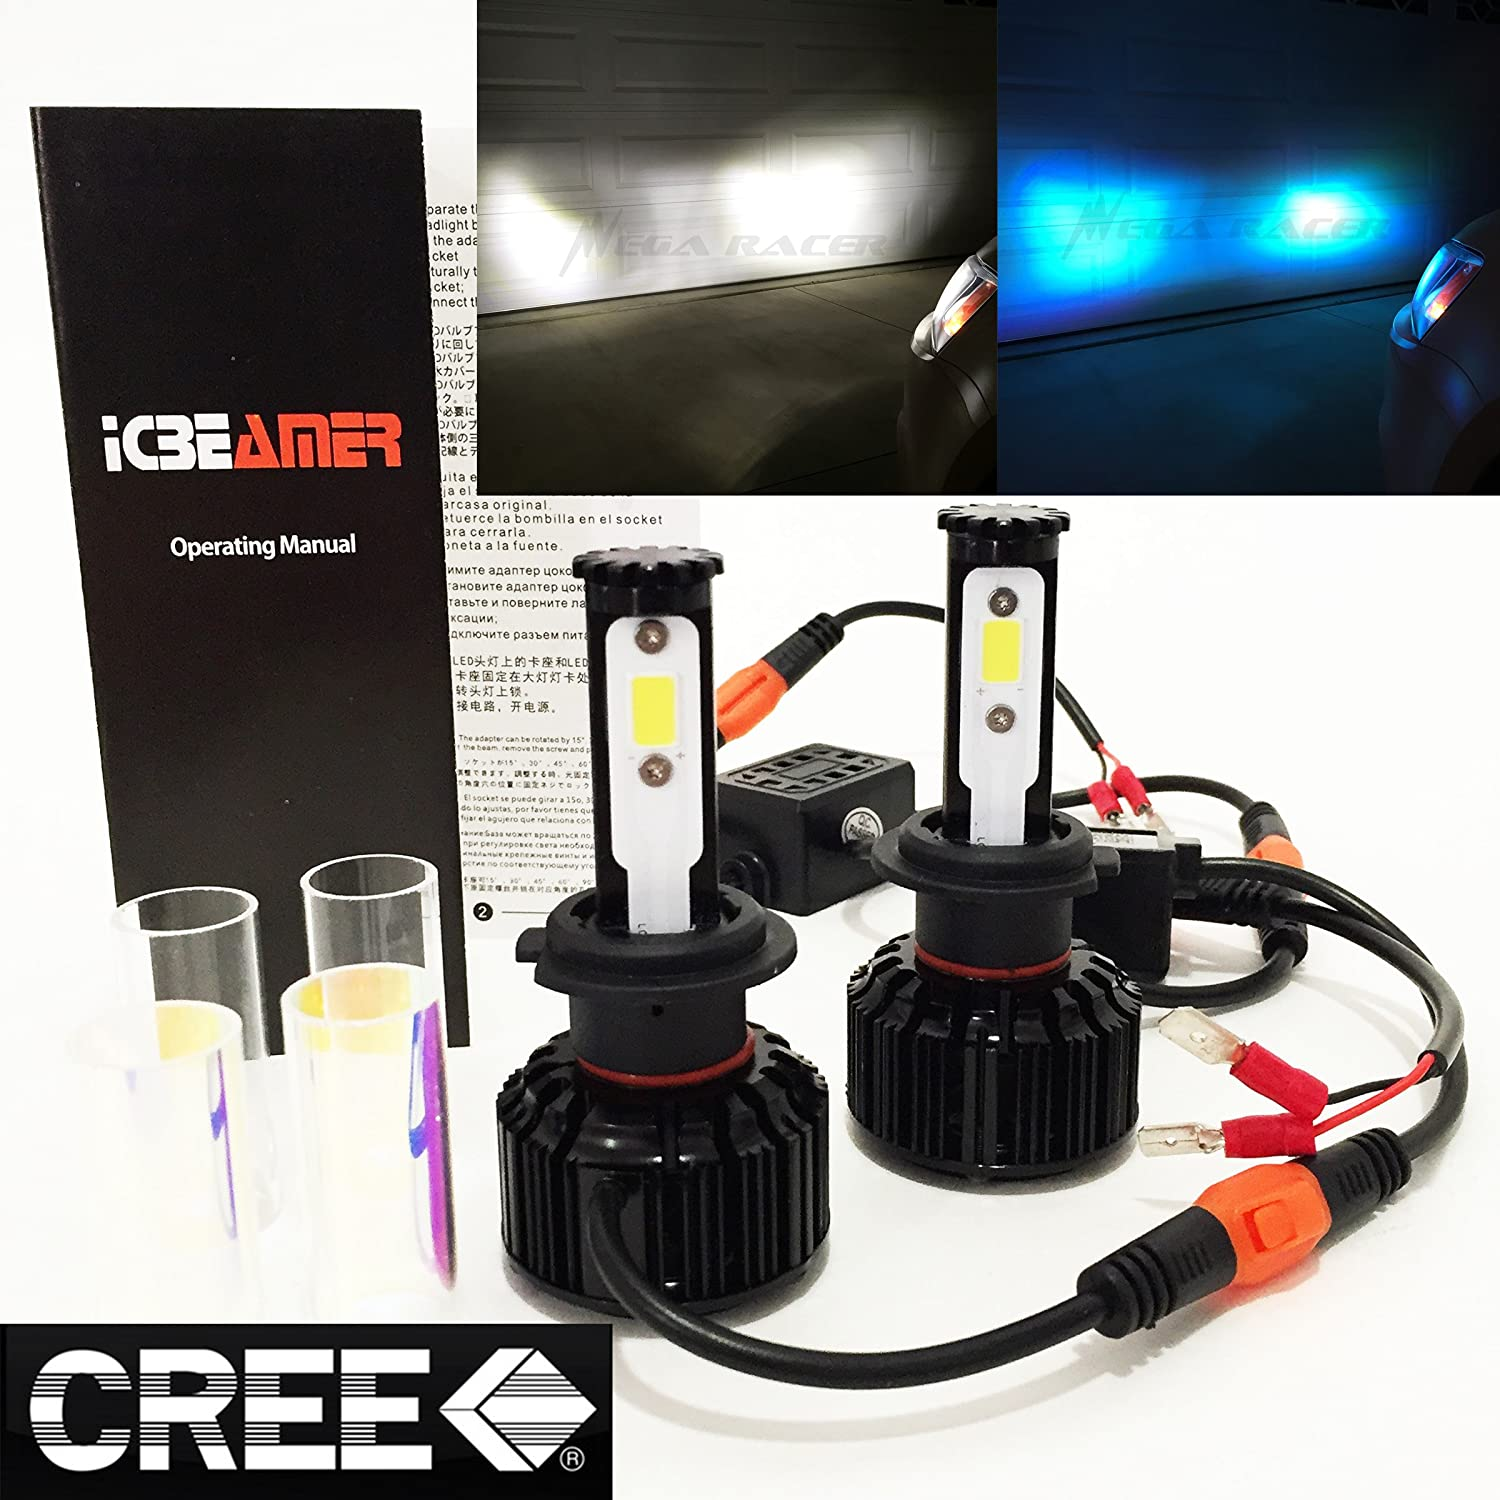 (2 COLORS IN 1 SET) H7 6000K White 10000K Blue (Low Beam Headlight) CREE COB LED Xenon Conversion Kit 8000 Lumen 80W USA